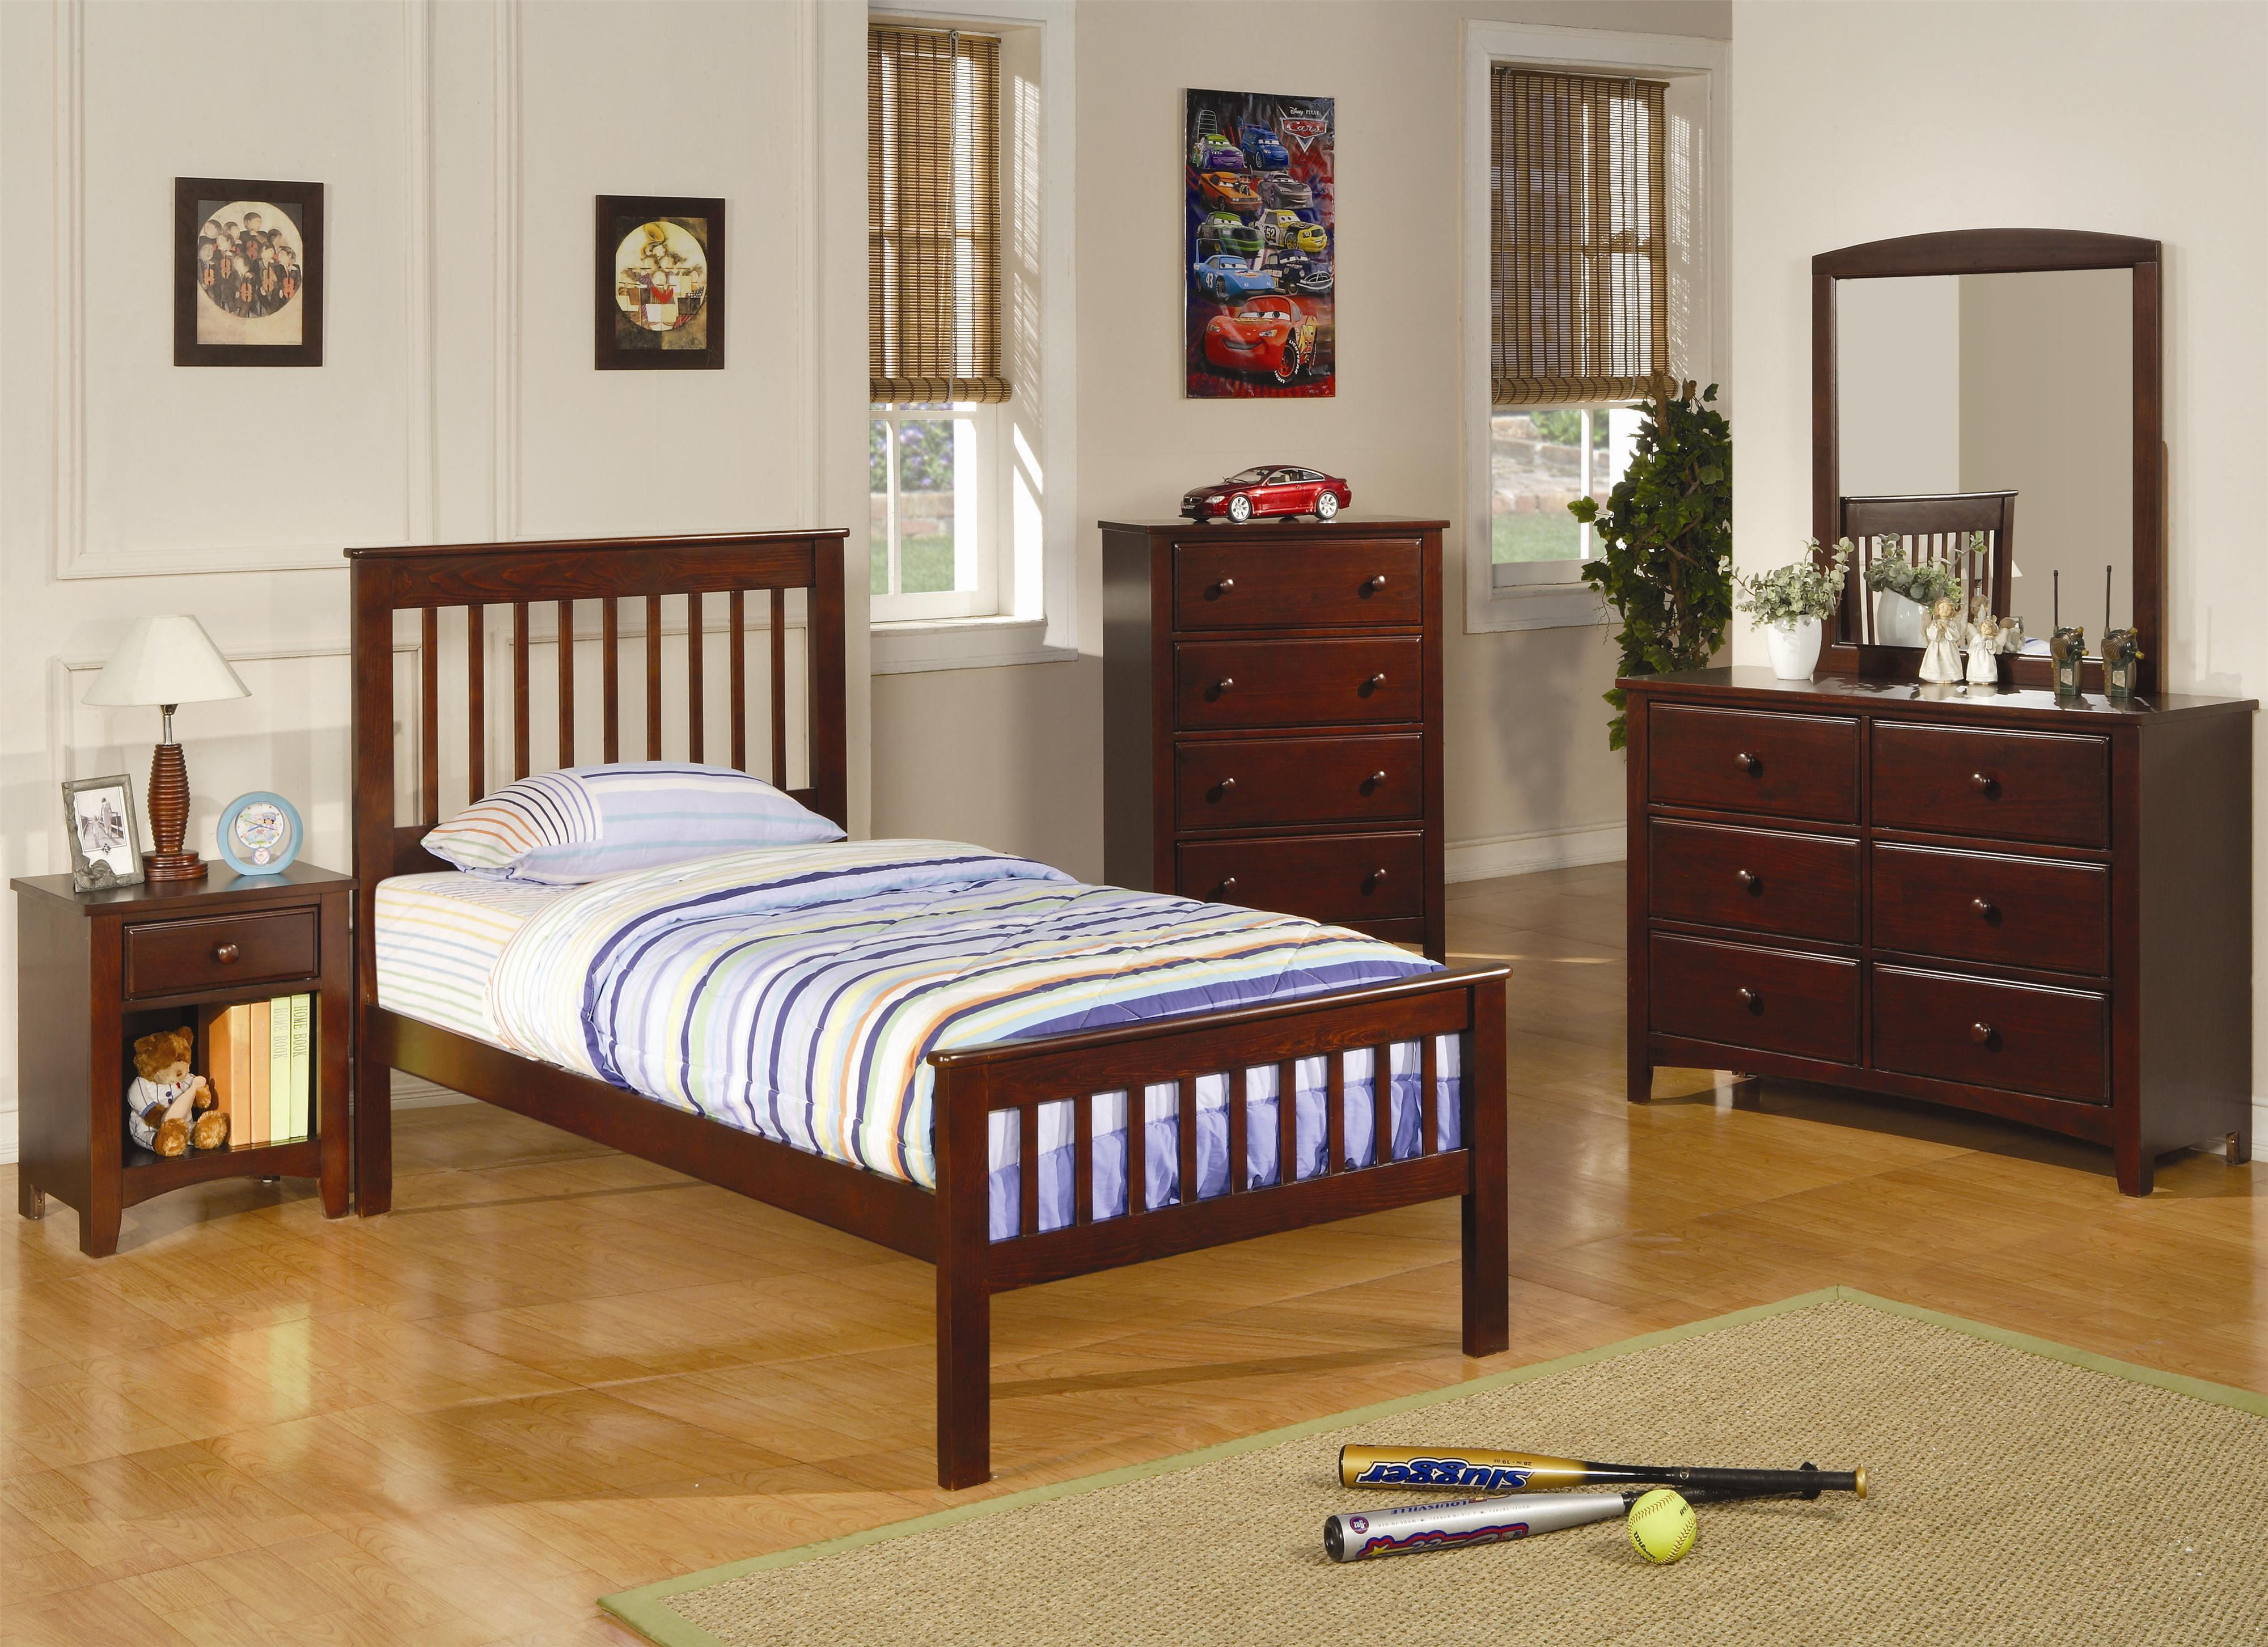 king palace ive lessons learned ii from furniture upholstered bedroom homelegance sets set off ashley pic white